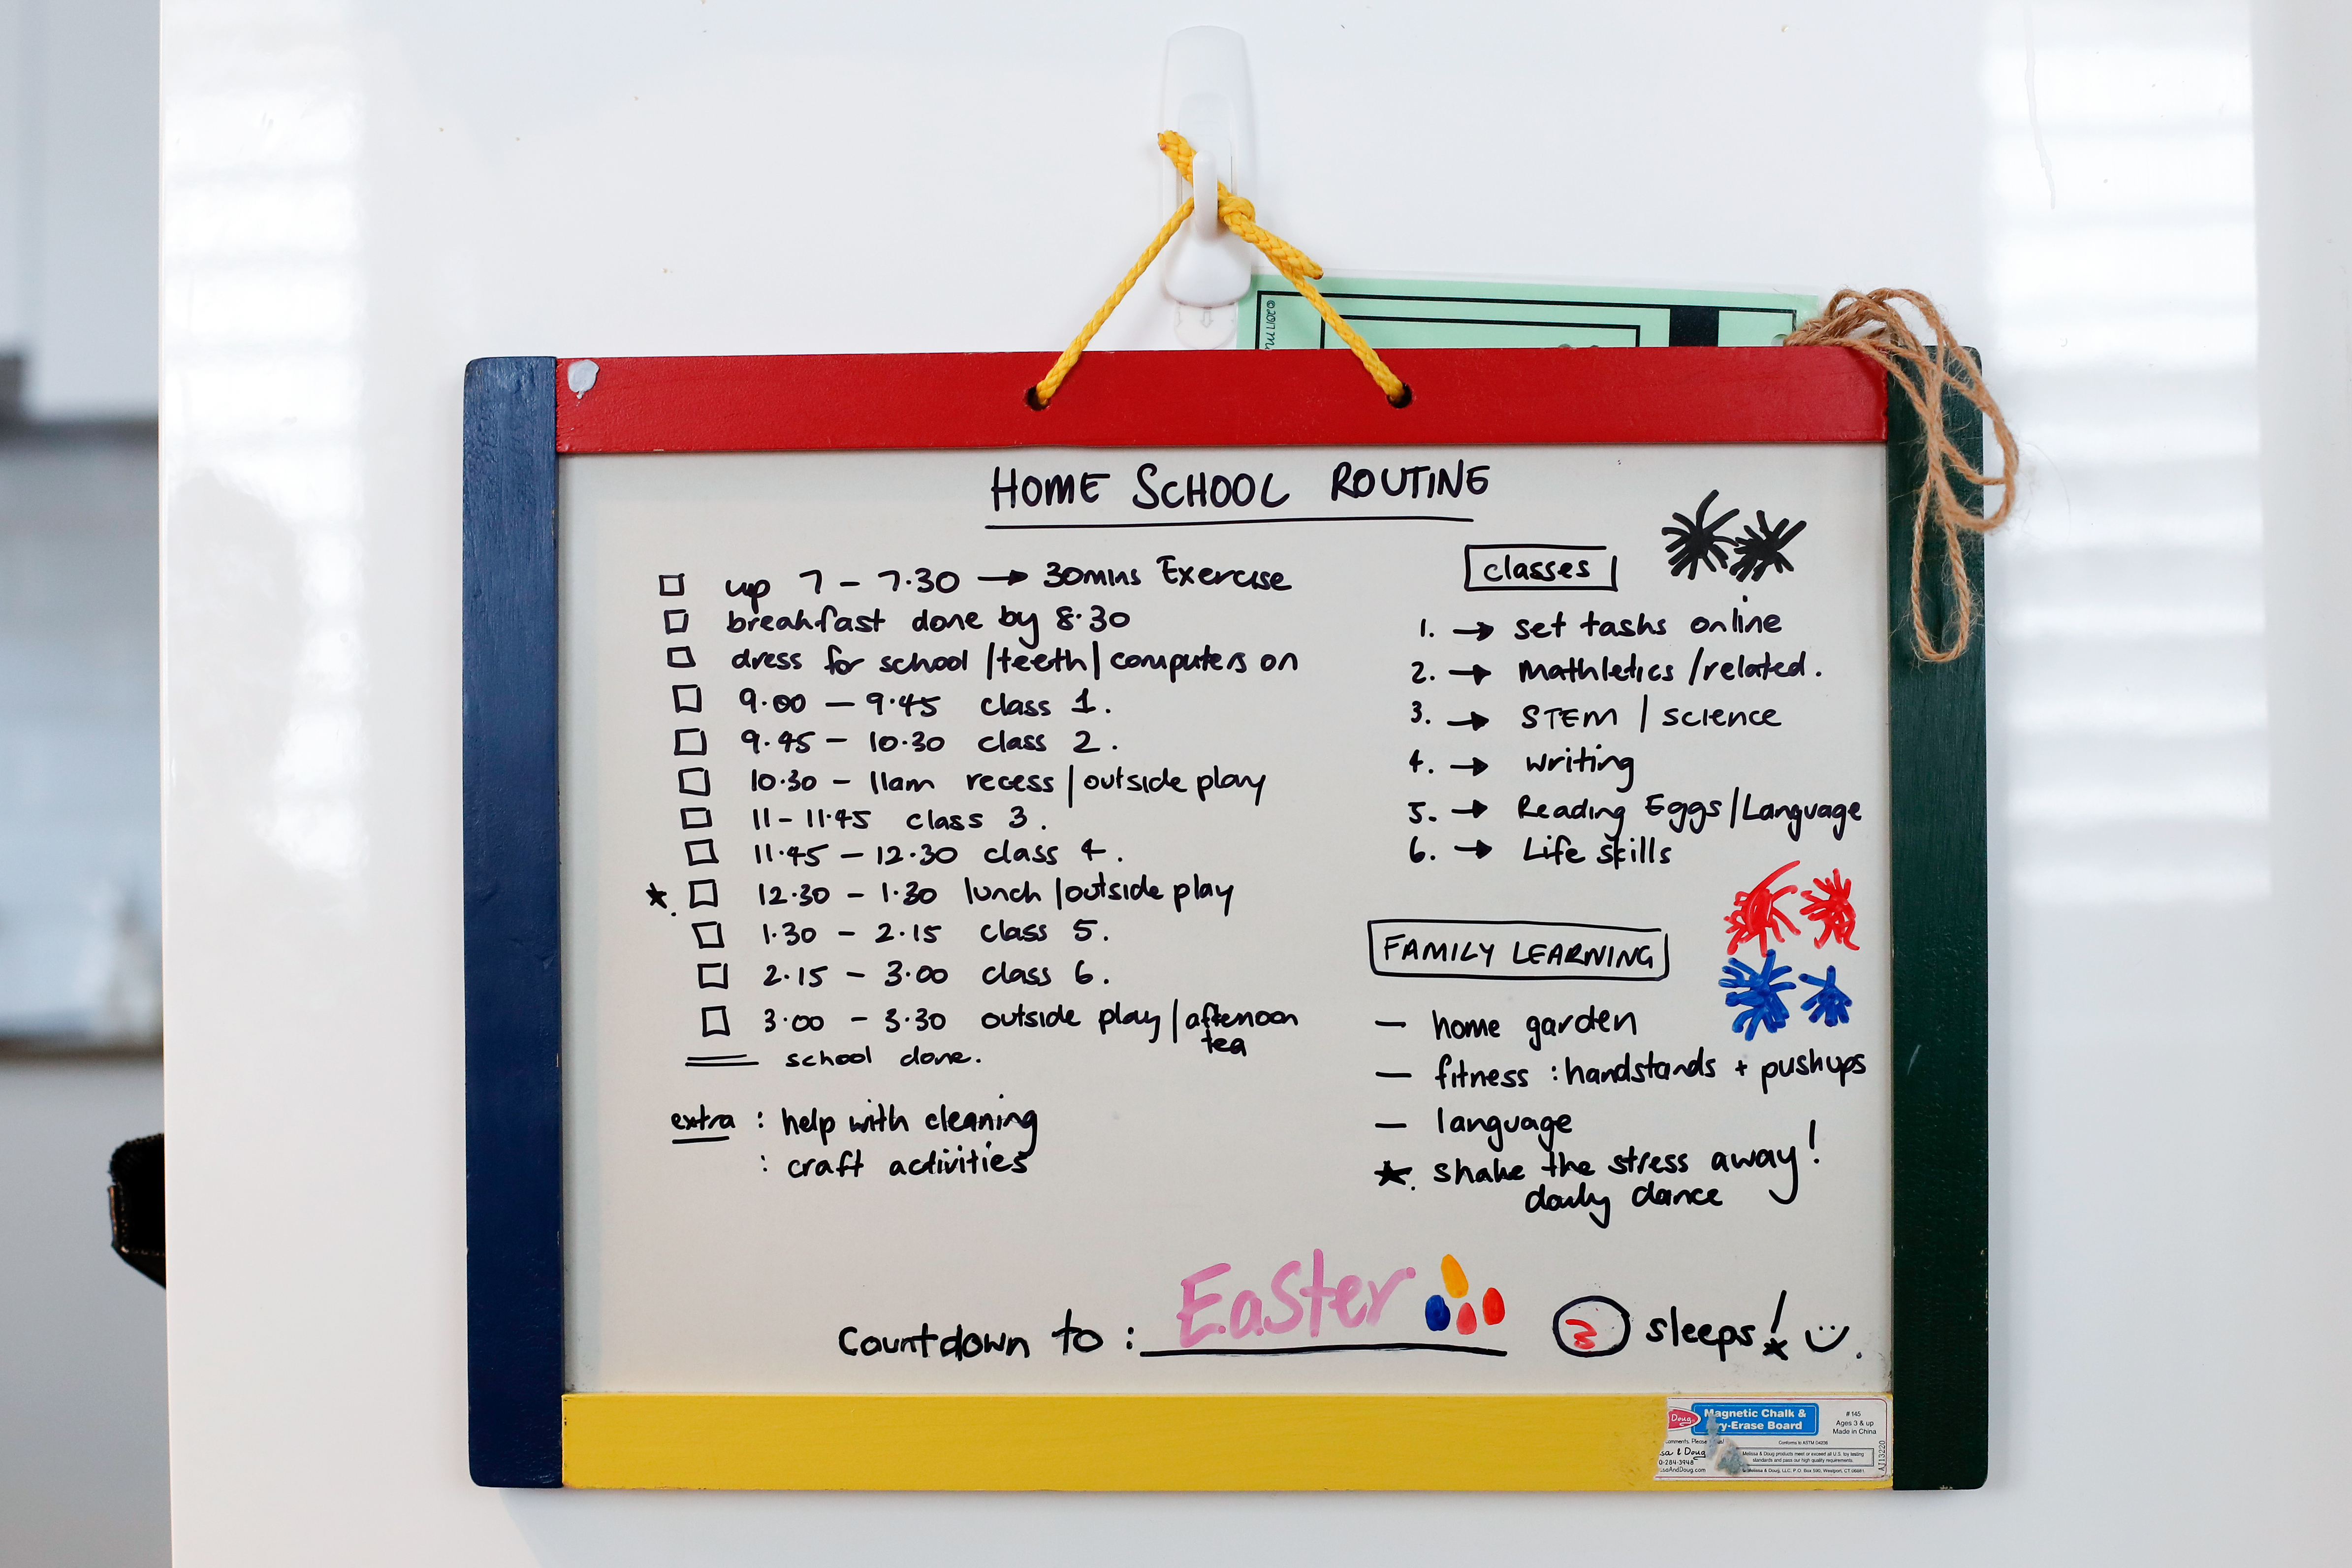 A list of home schooling routine is seen at Donna Eddy's home on April 09, 2020 in Sydney, Australia. (Photo by Brendon Thorne/Getty Images)